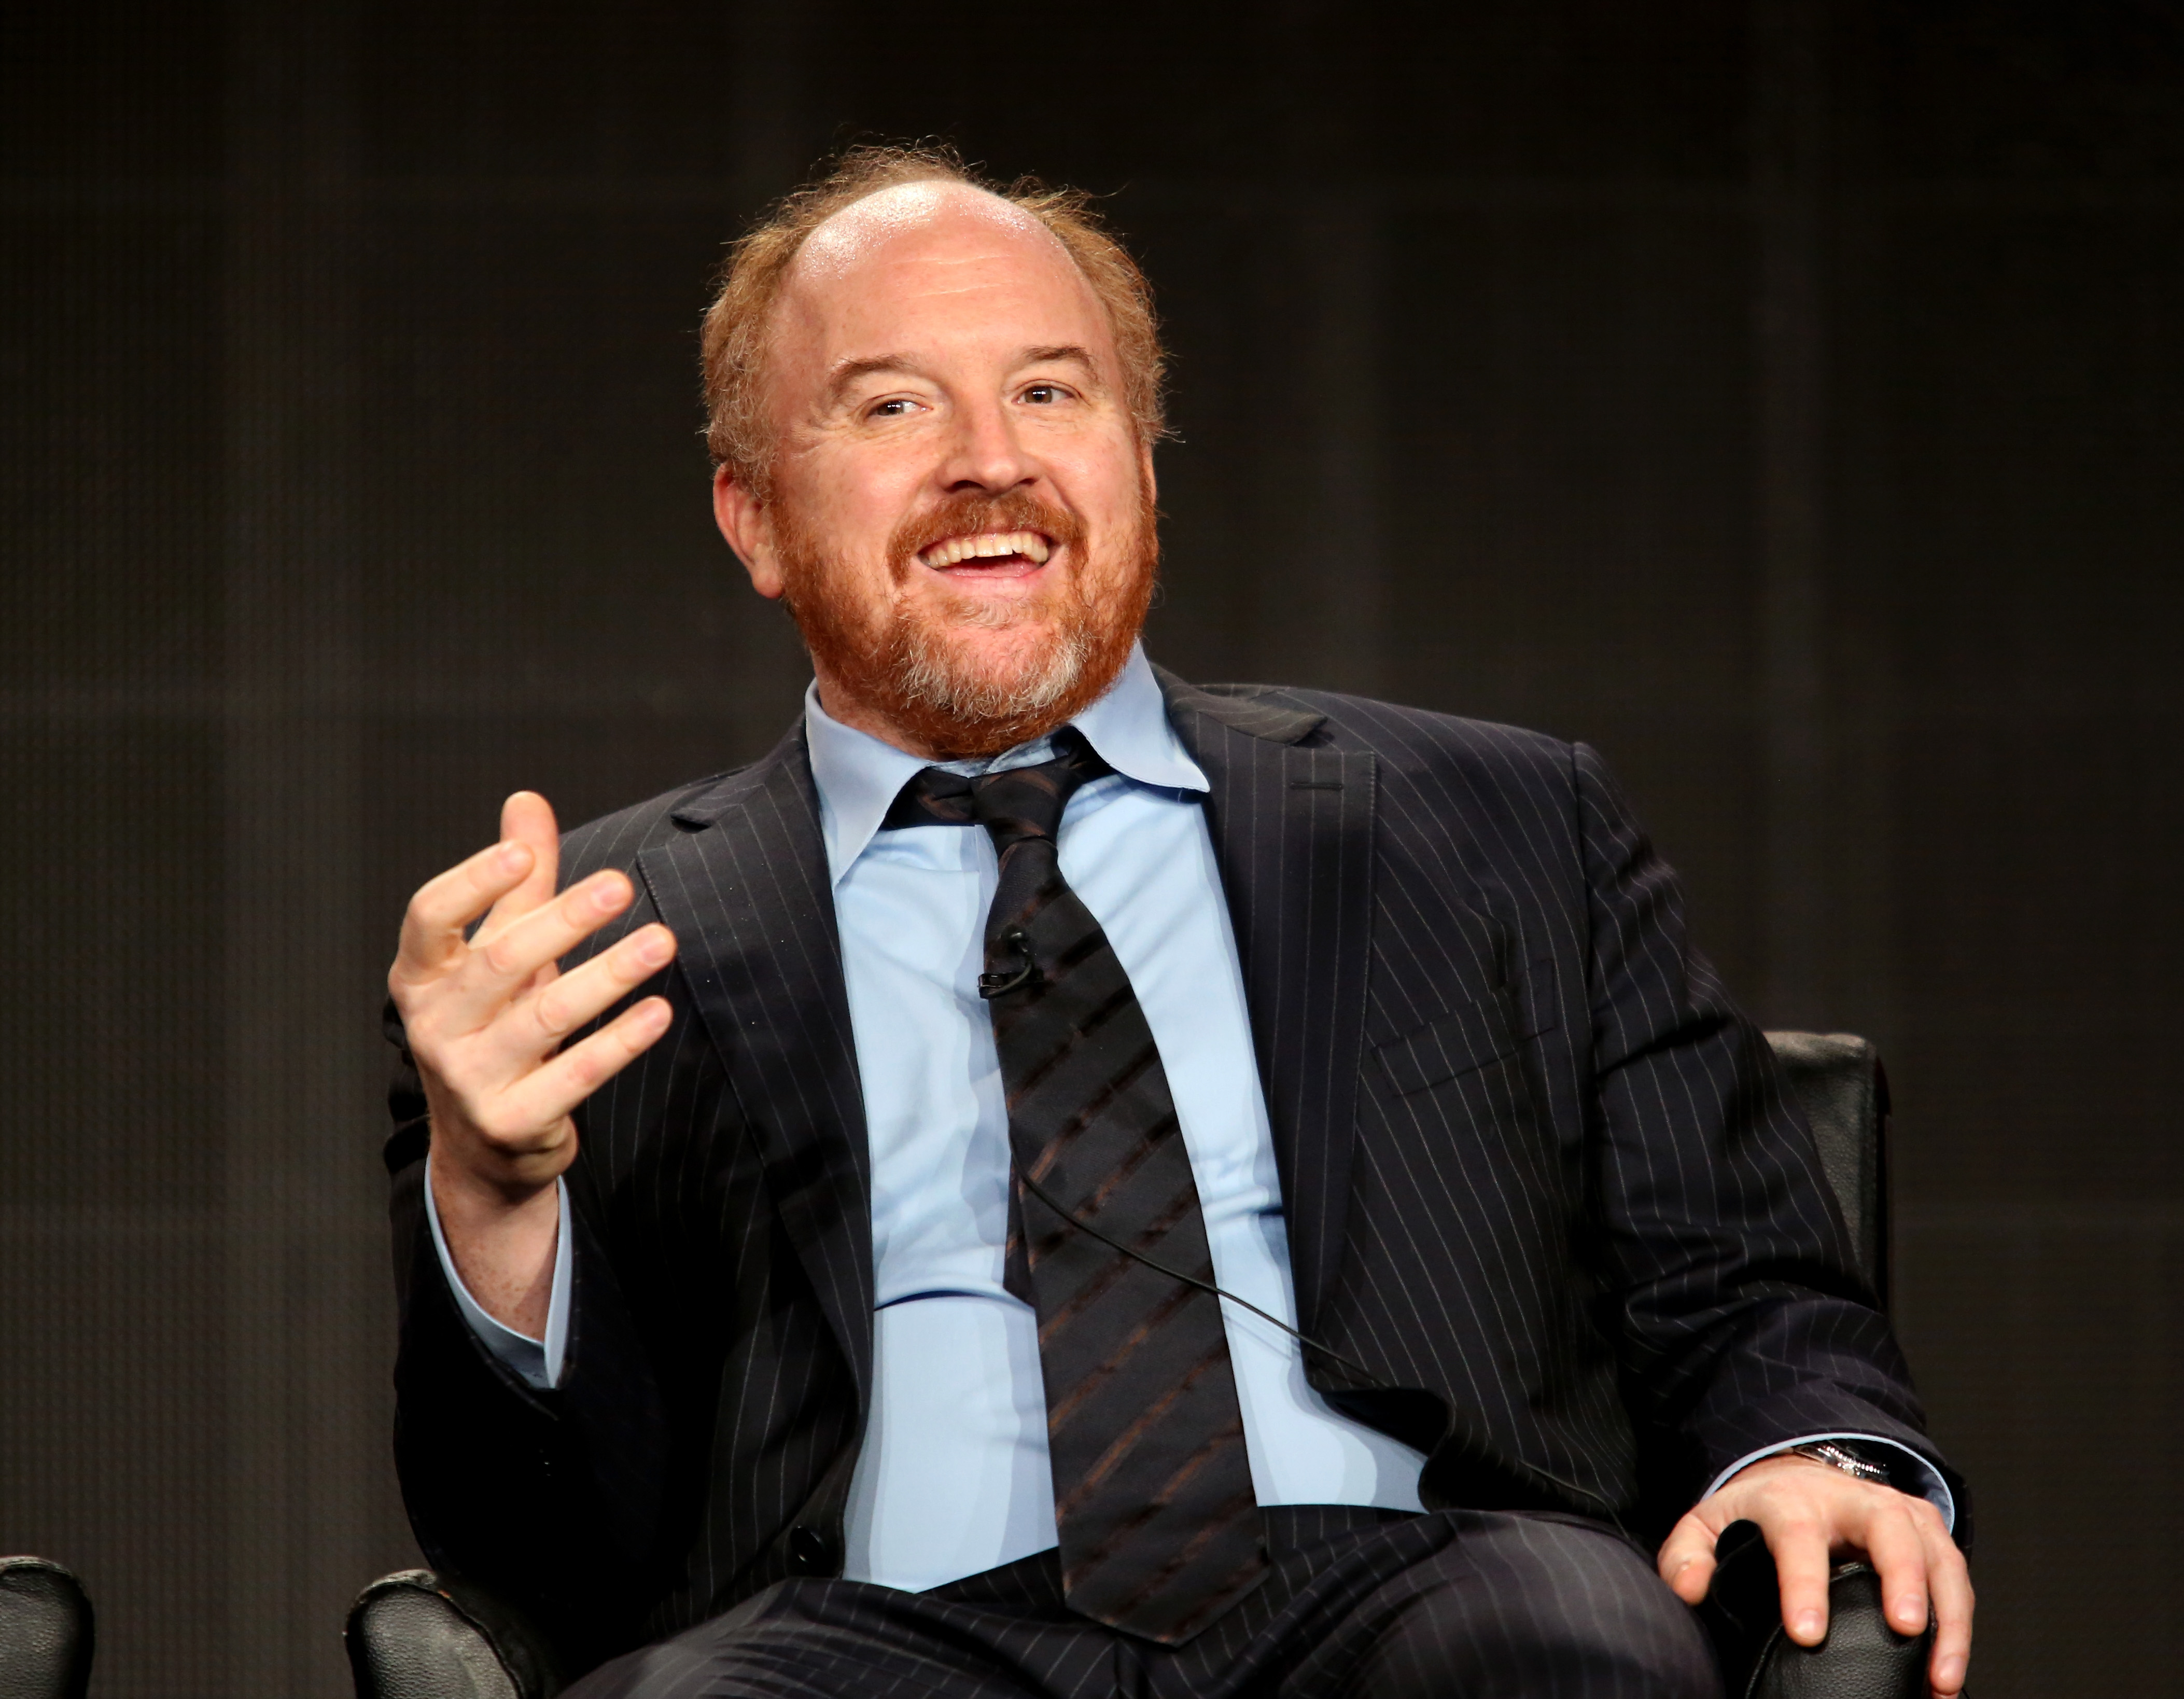 Louis C.K. at the 'Louie' panel discussion during the Television Critics Association press tour in Pasadena, Calif. on Jan. 18, 2015.